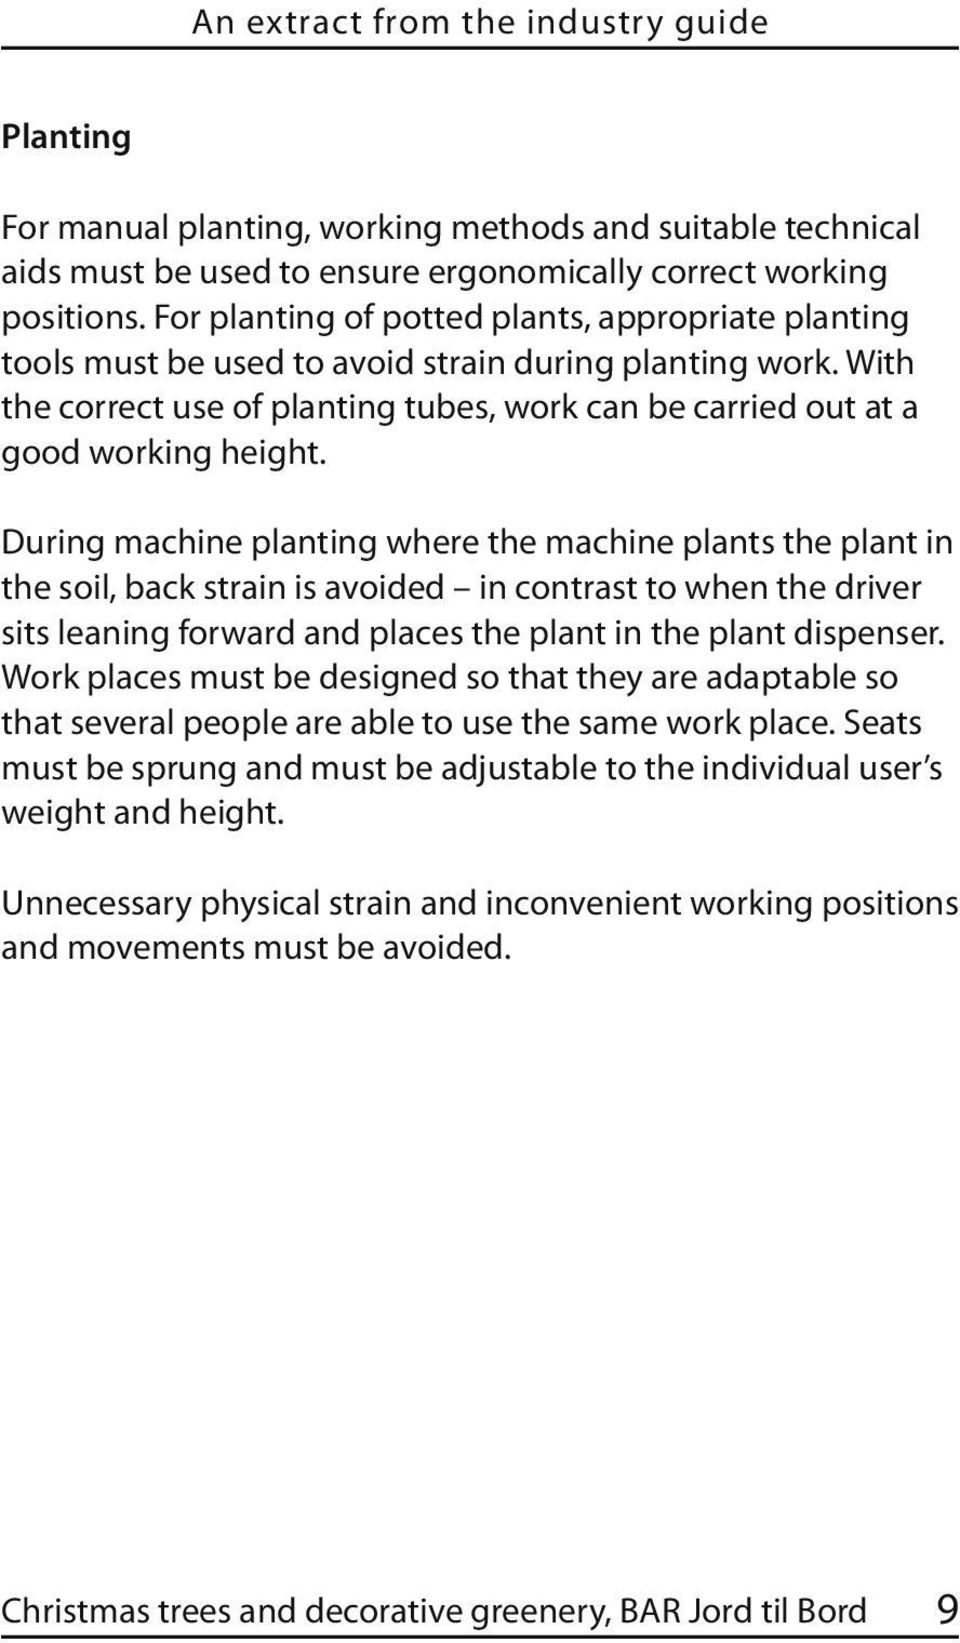 During machine planting where the machine plants the plant in the soil, back strain is avoided in contrast to when the driver sits leaning forward and places the plant in the plant dispenser.